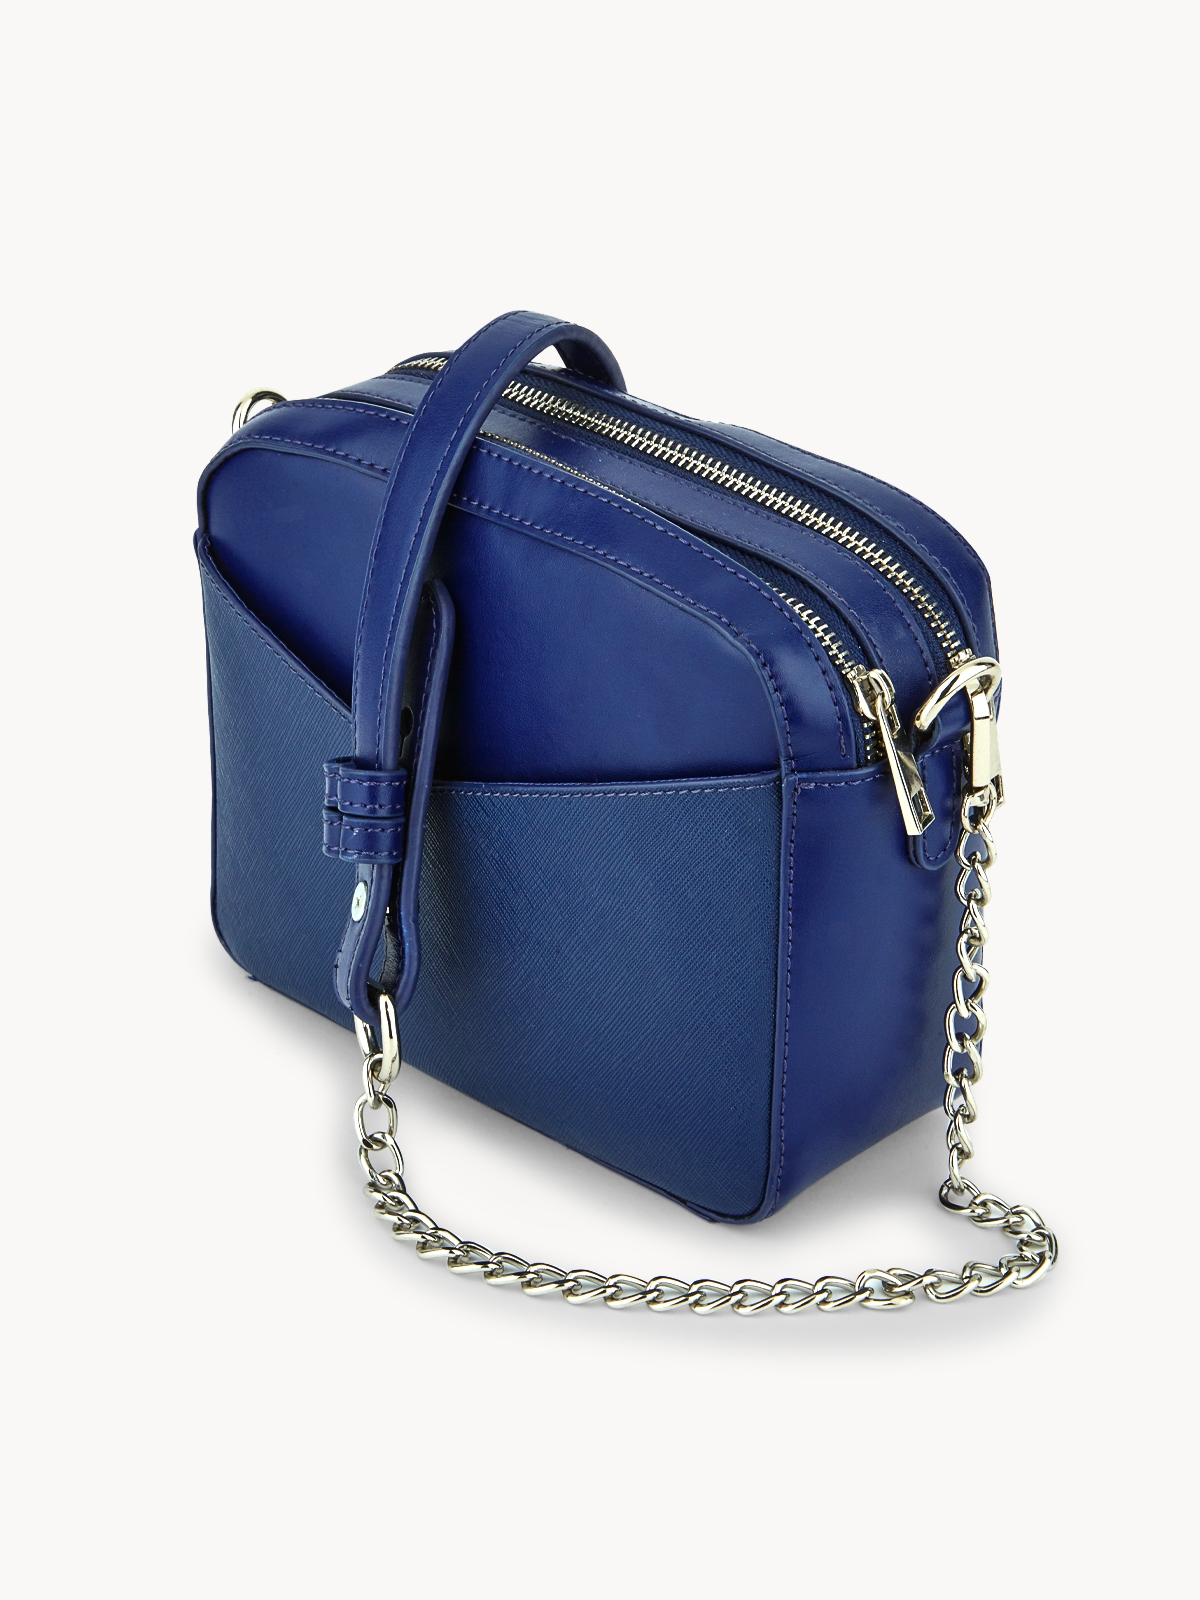 Chawisa 2 Sided Authentic Leather Bag Navy